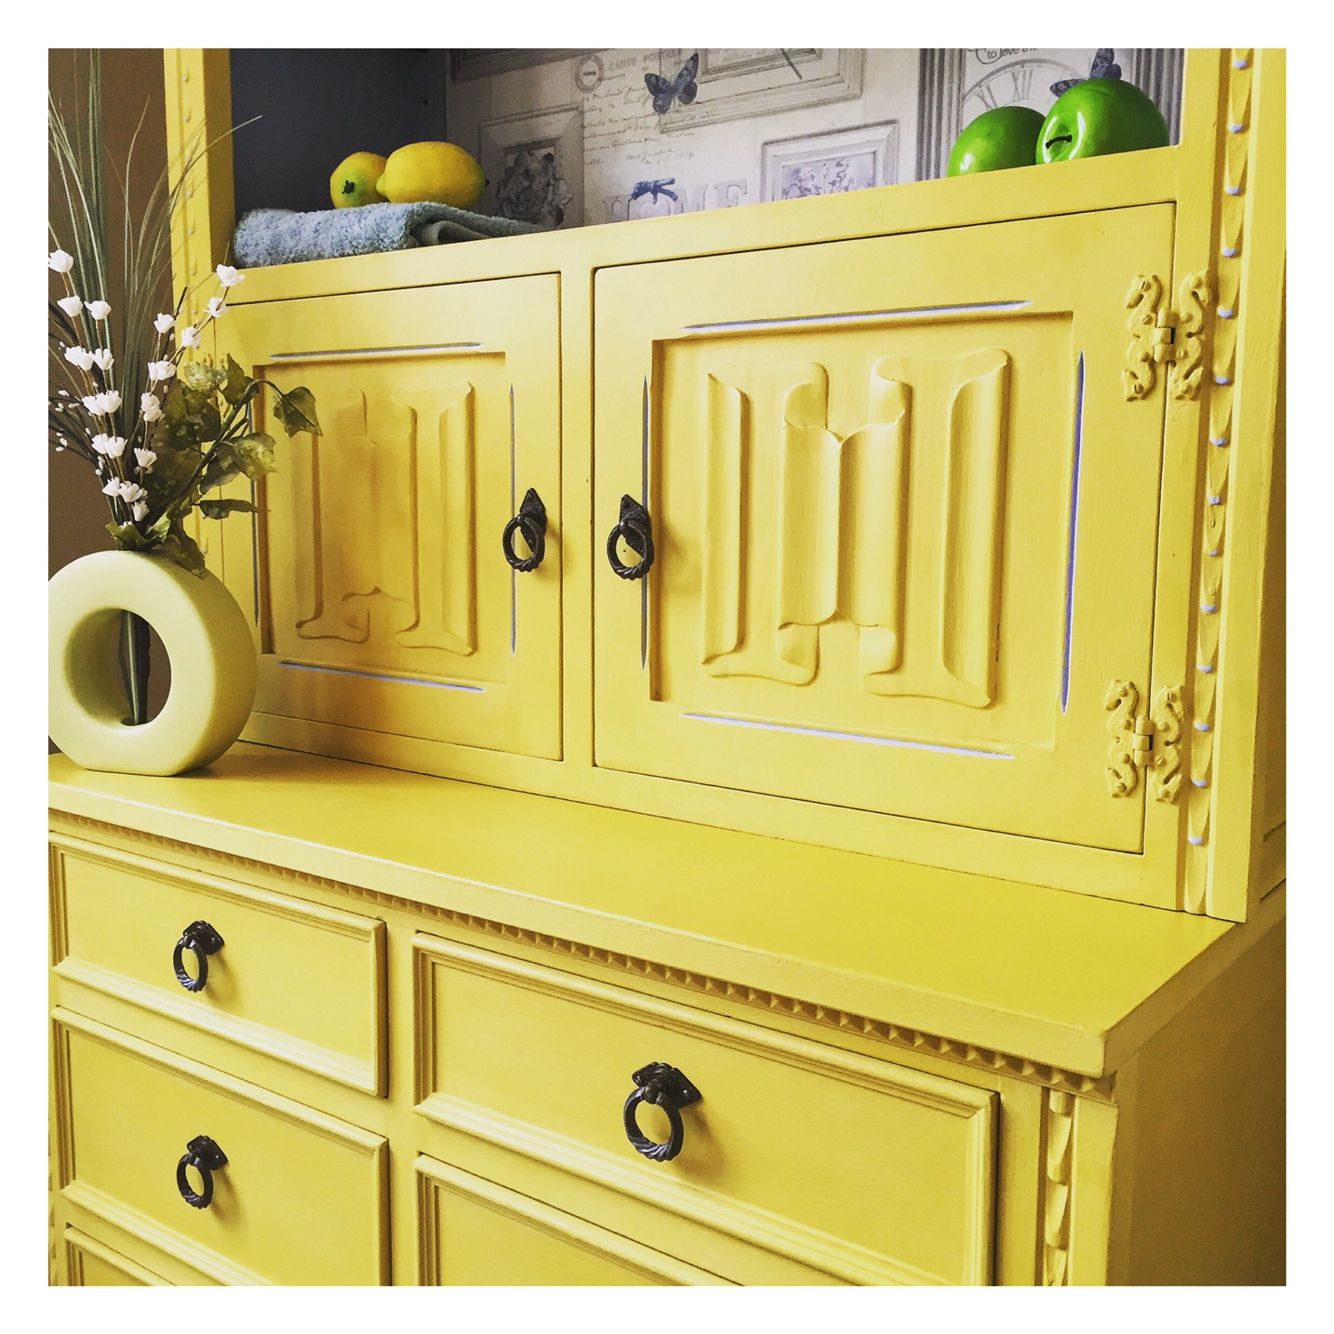 Hand painted 'Jaycee' dresser, bookcase by The Old Barnyard at Amorini